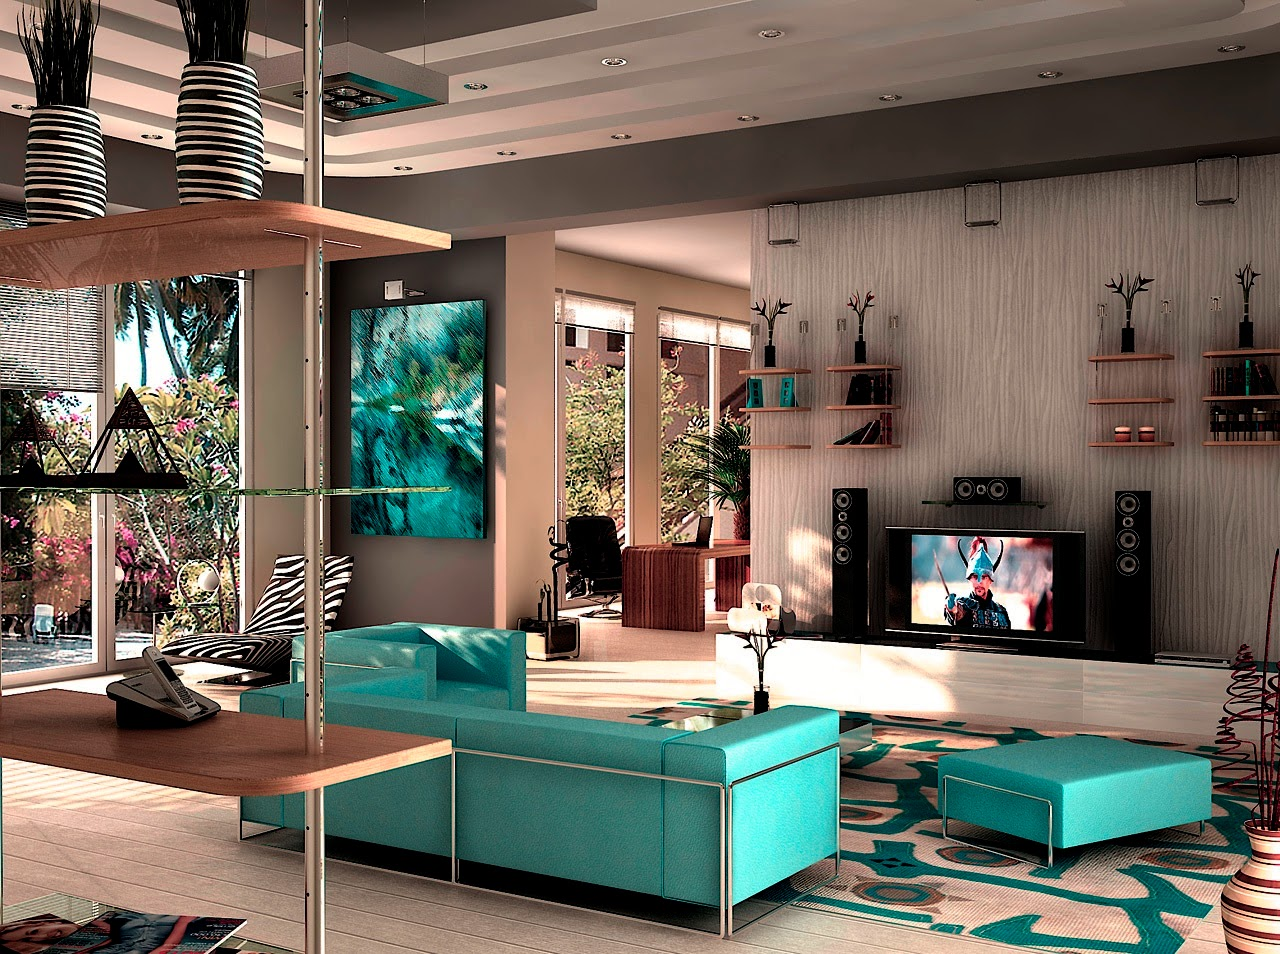 Related : Interior Decorating Ideas for Dream House Plans